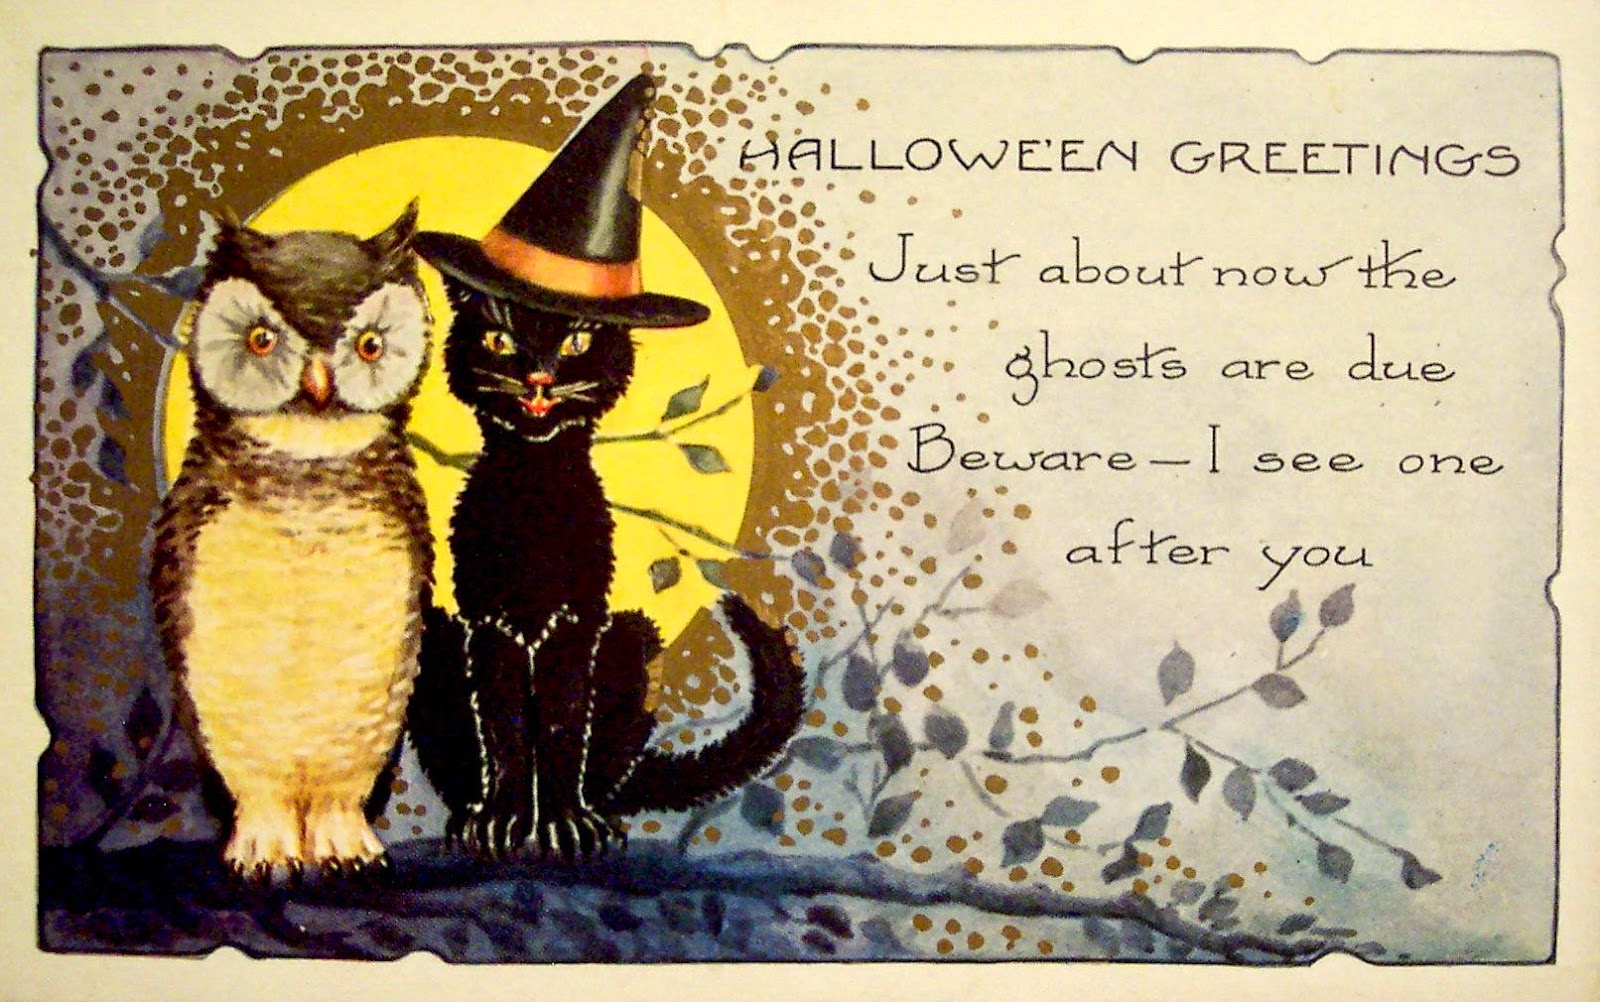 The Gothic Embrace: Vintage Halloween Graphics